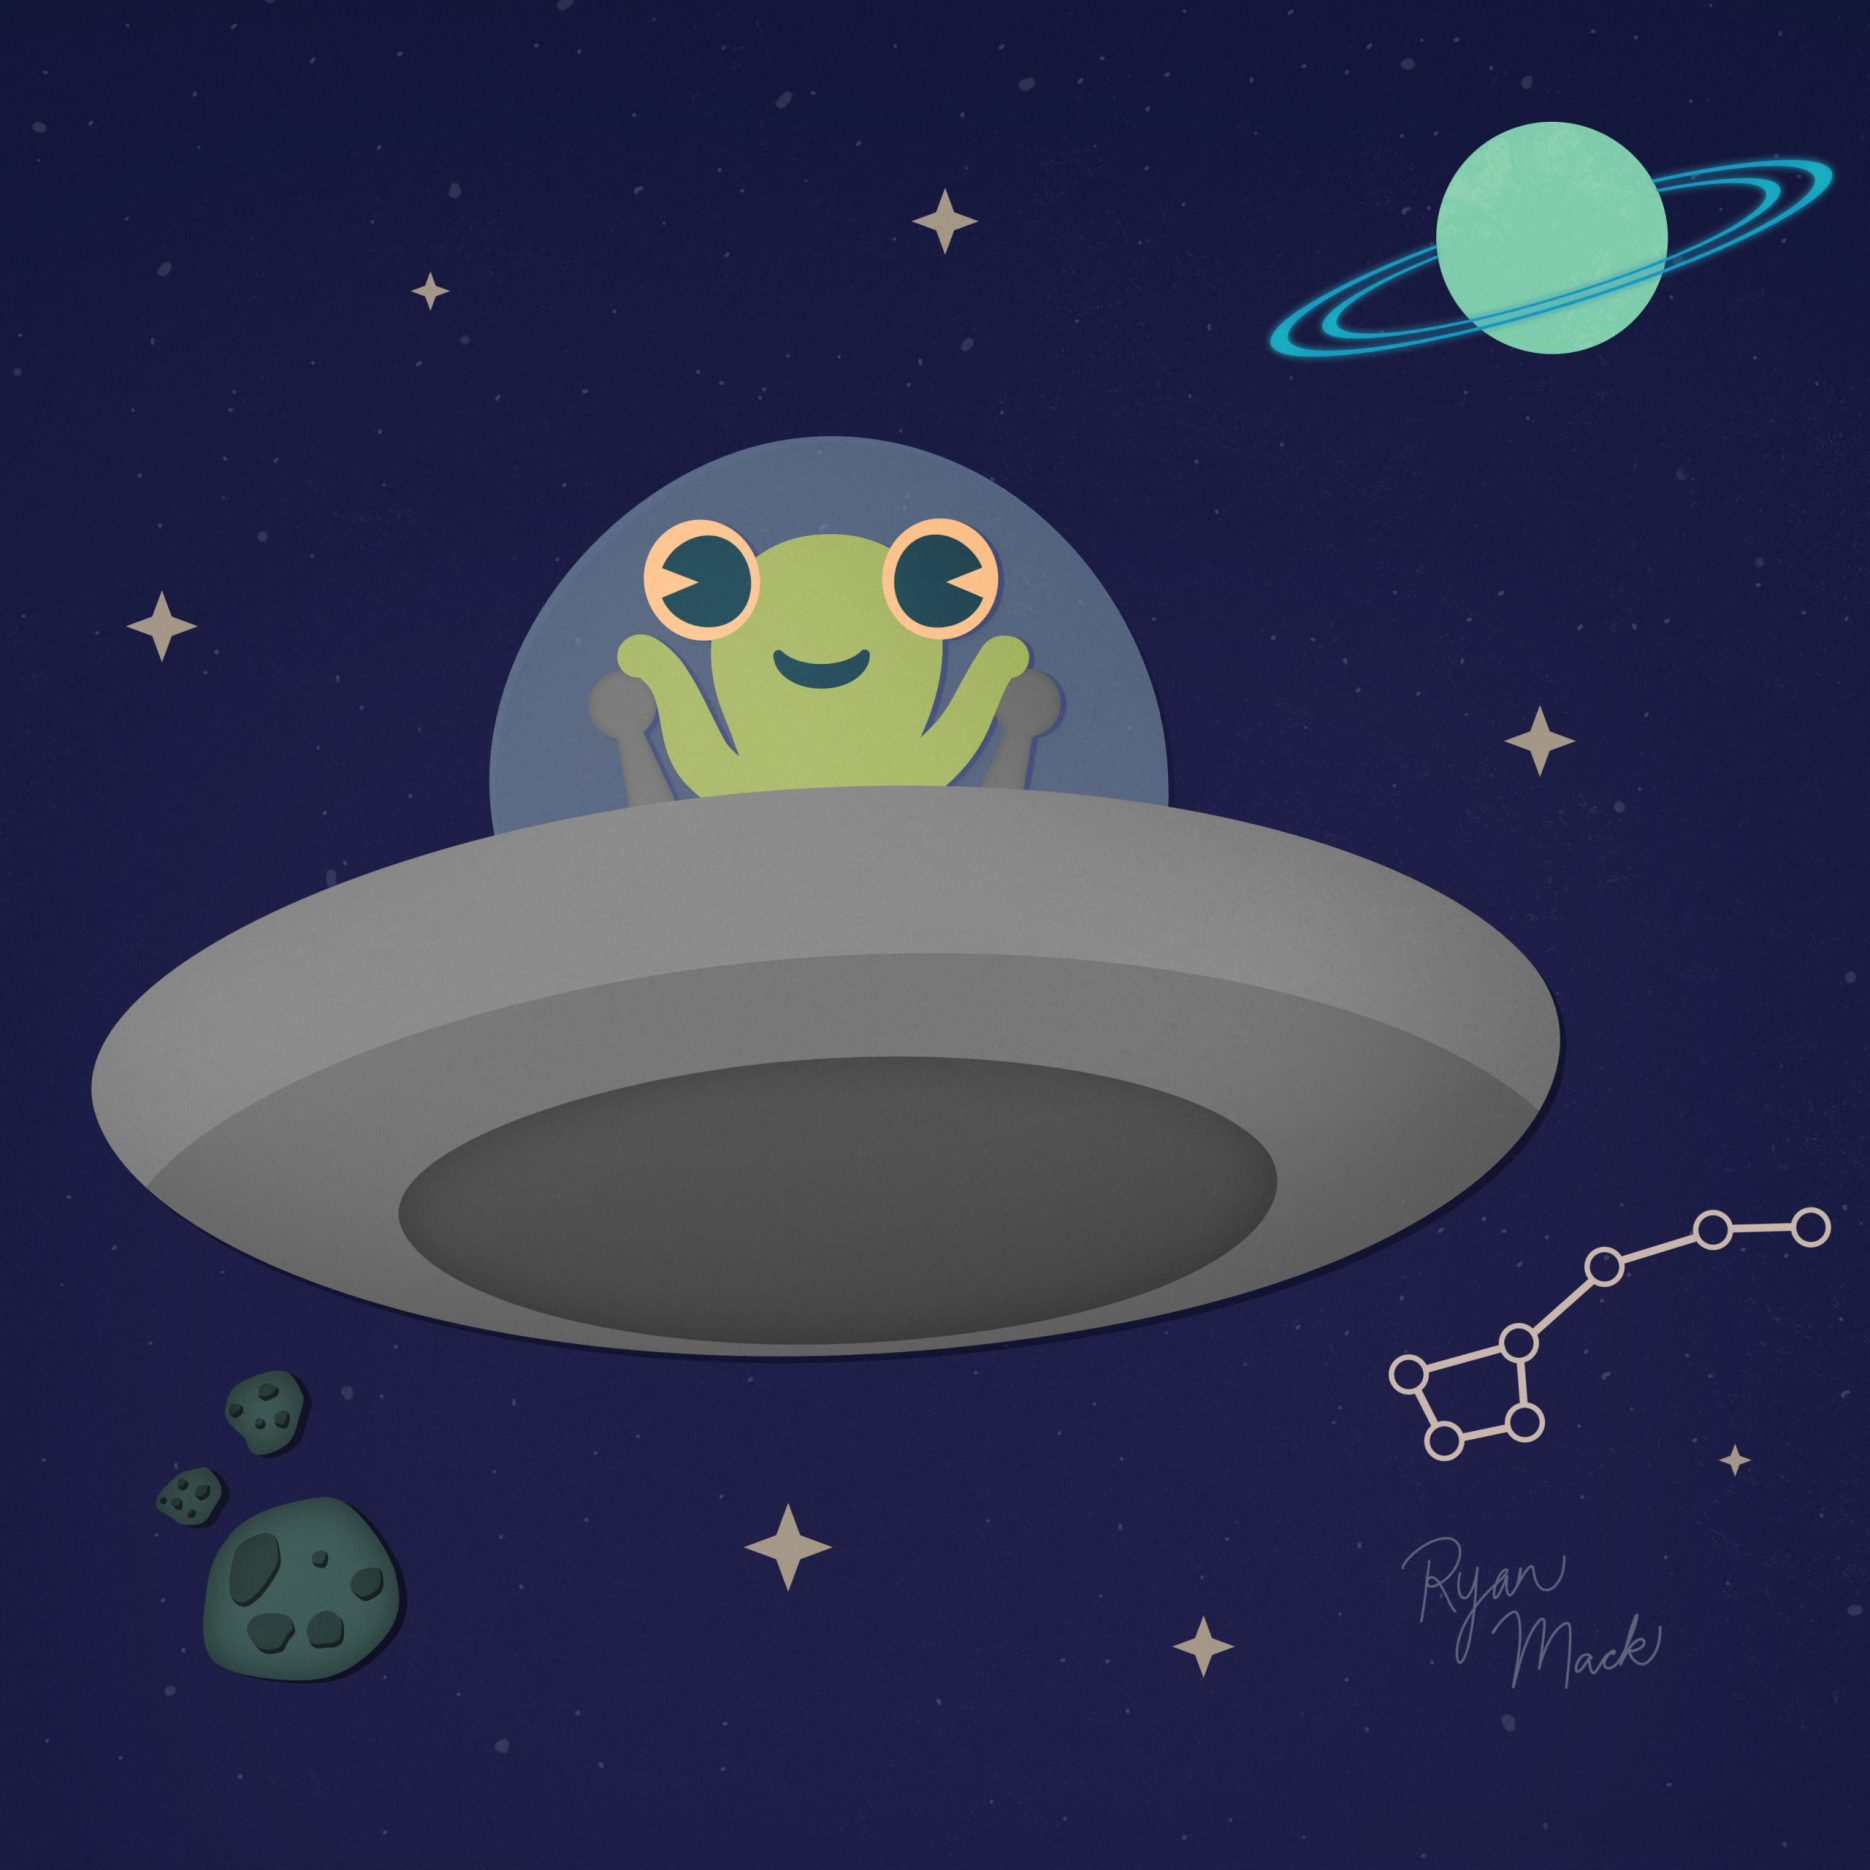 Cute little alien creature with big eyes in a flying saucer